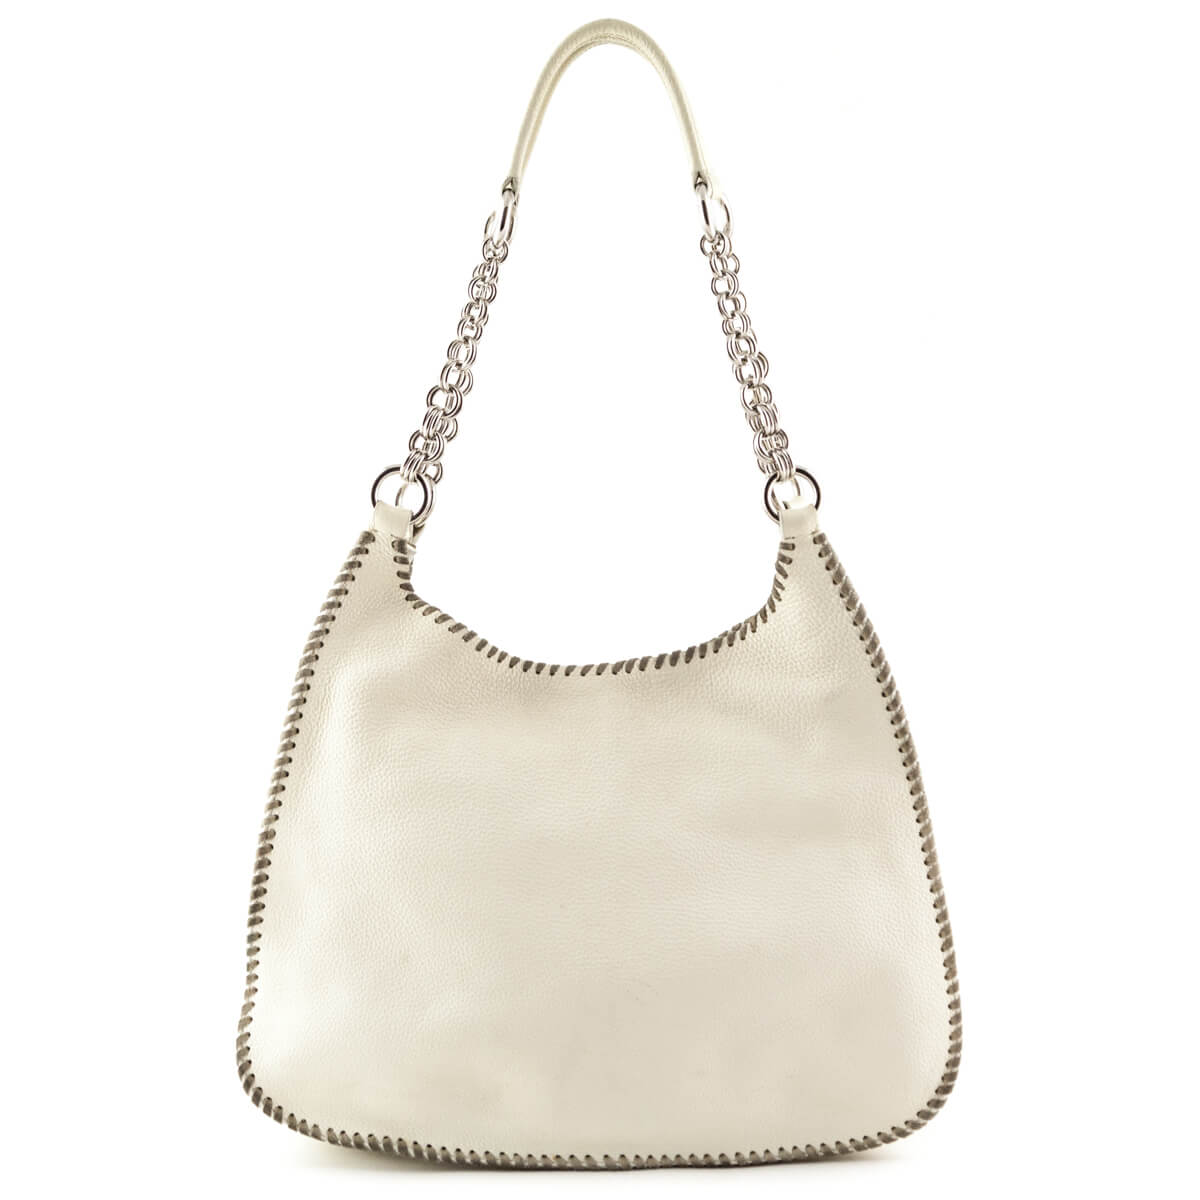 4dda320b3859 Prada Cream Vitello Daino Whipstich Shoulder Bag - LOVE that BAG - Preowned Authentic  Designer Handbags ...